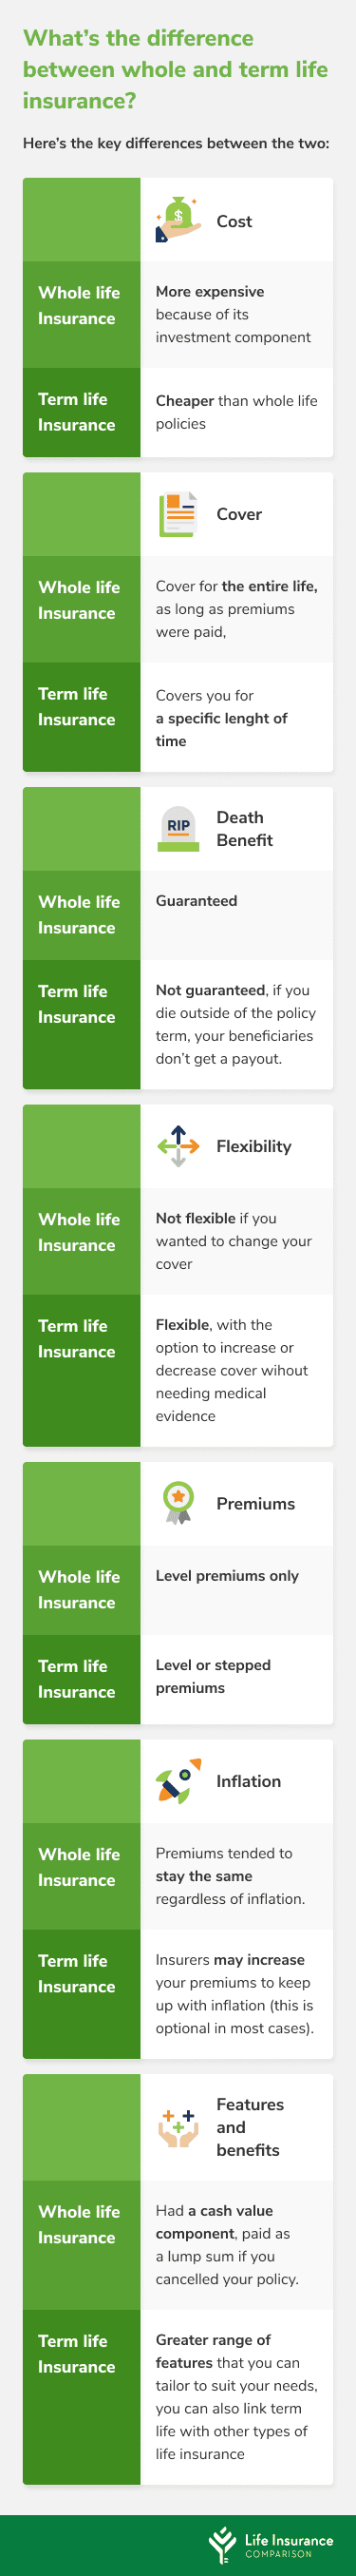 Table detailing the differences between whole life insurance and term life insurance